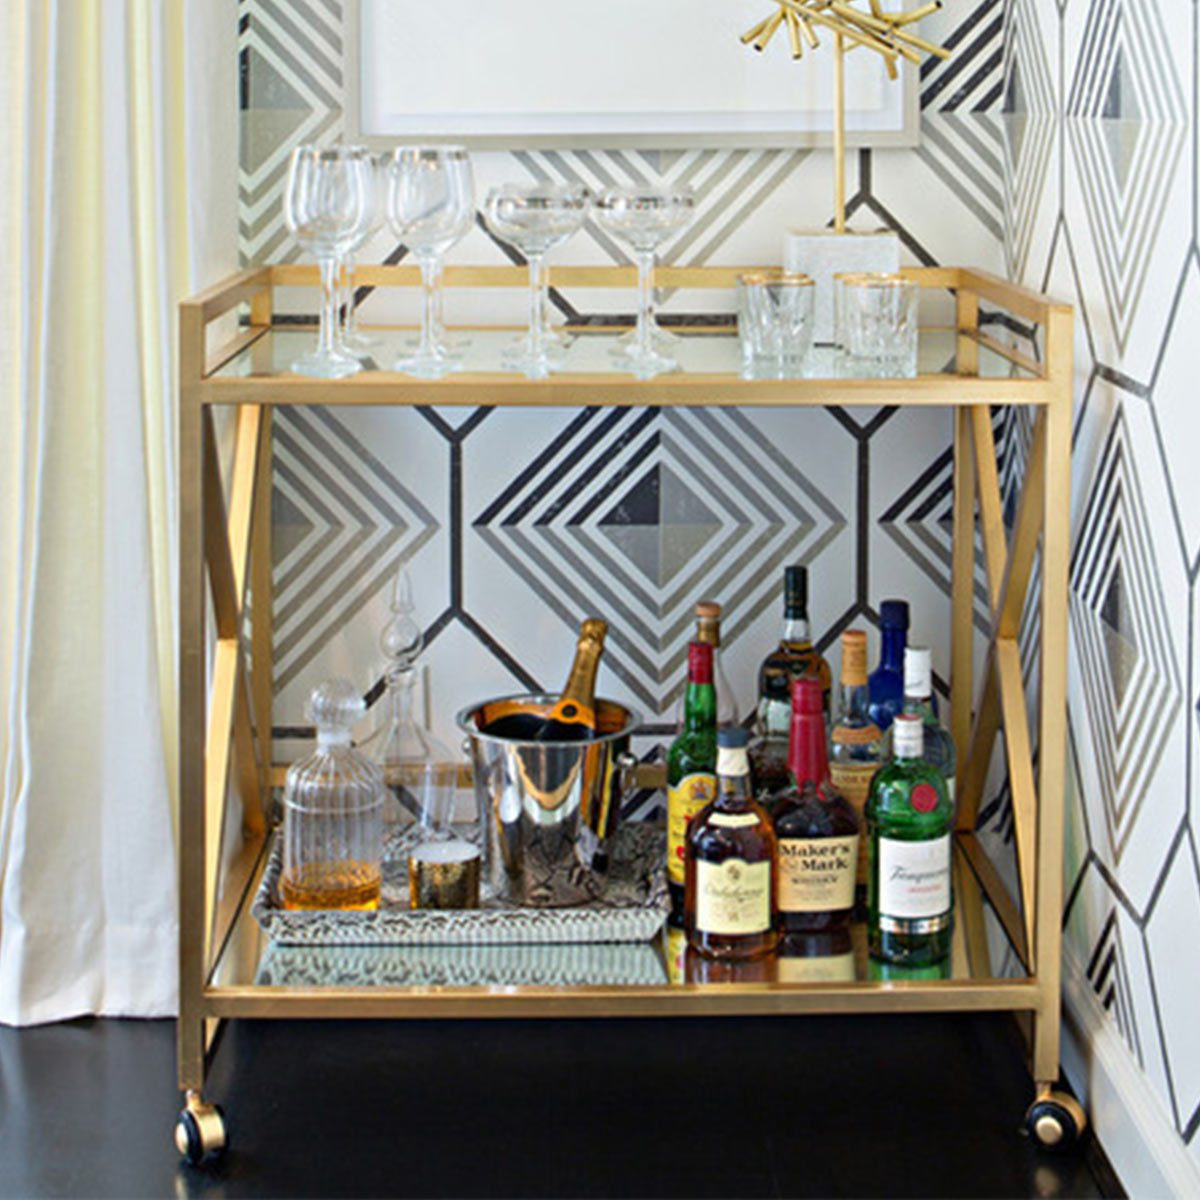 Your Bar Doesn't Have to Be Stationary